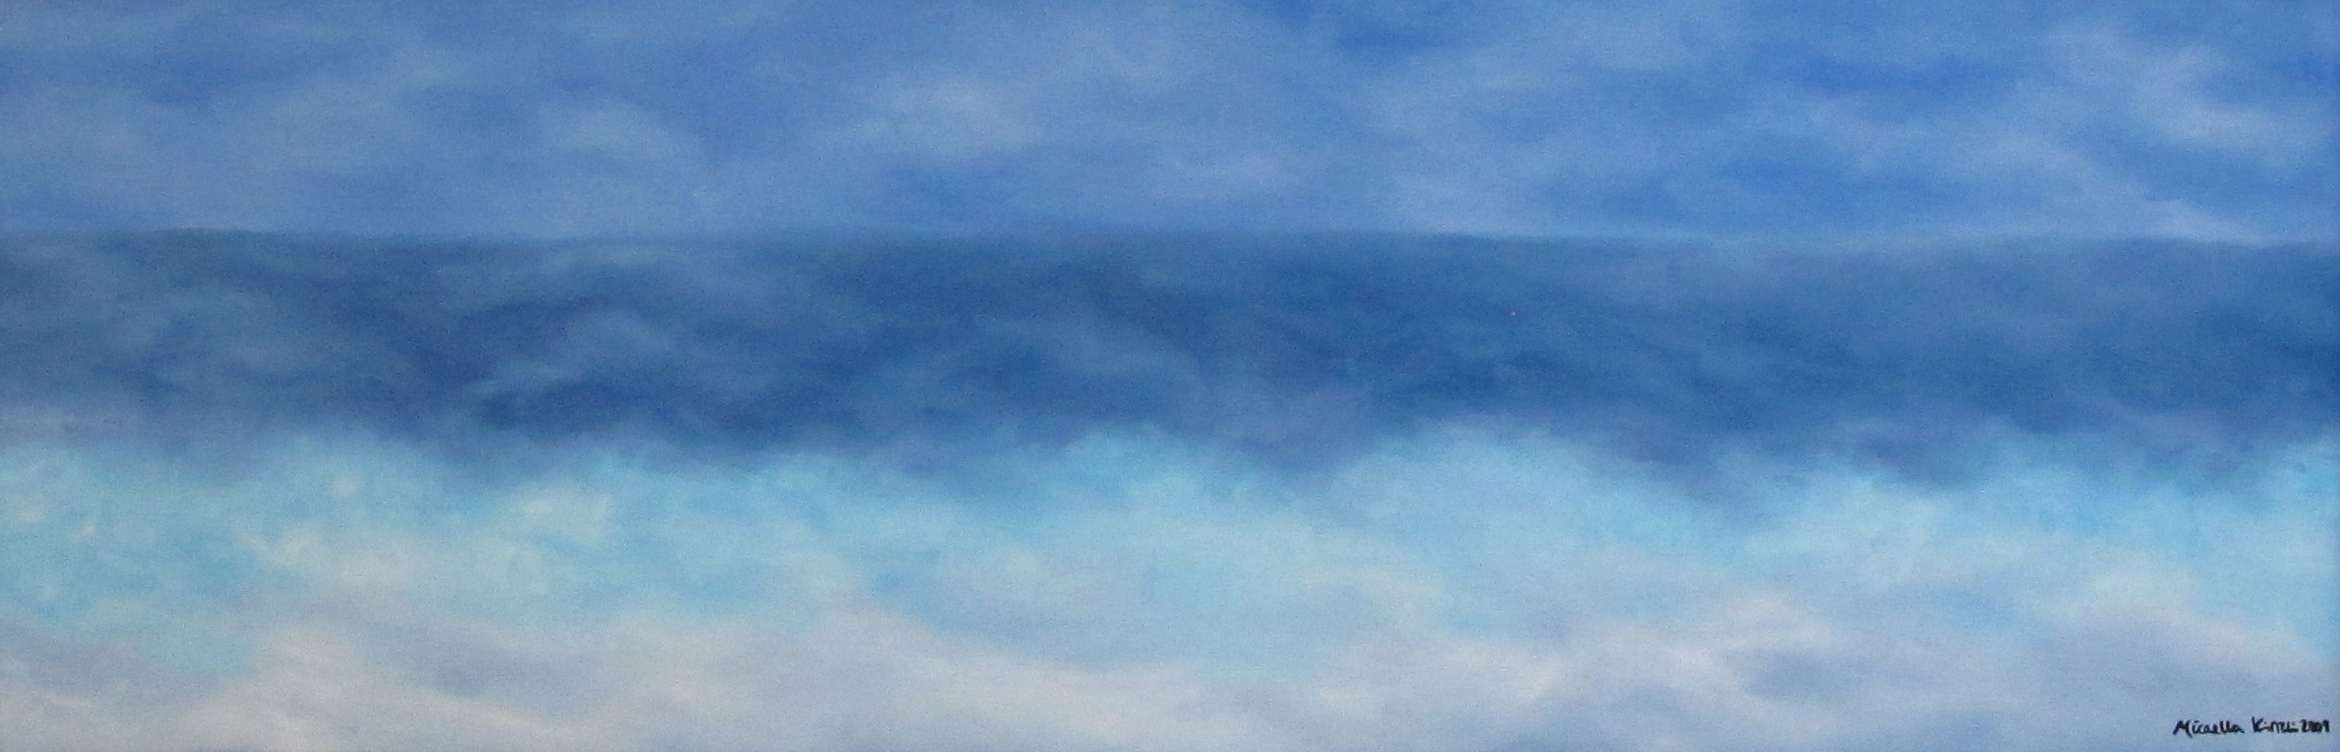 12 x 36, Oil on Linen (Sold)